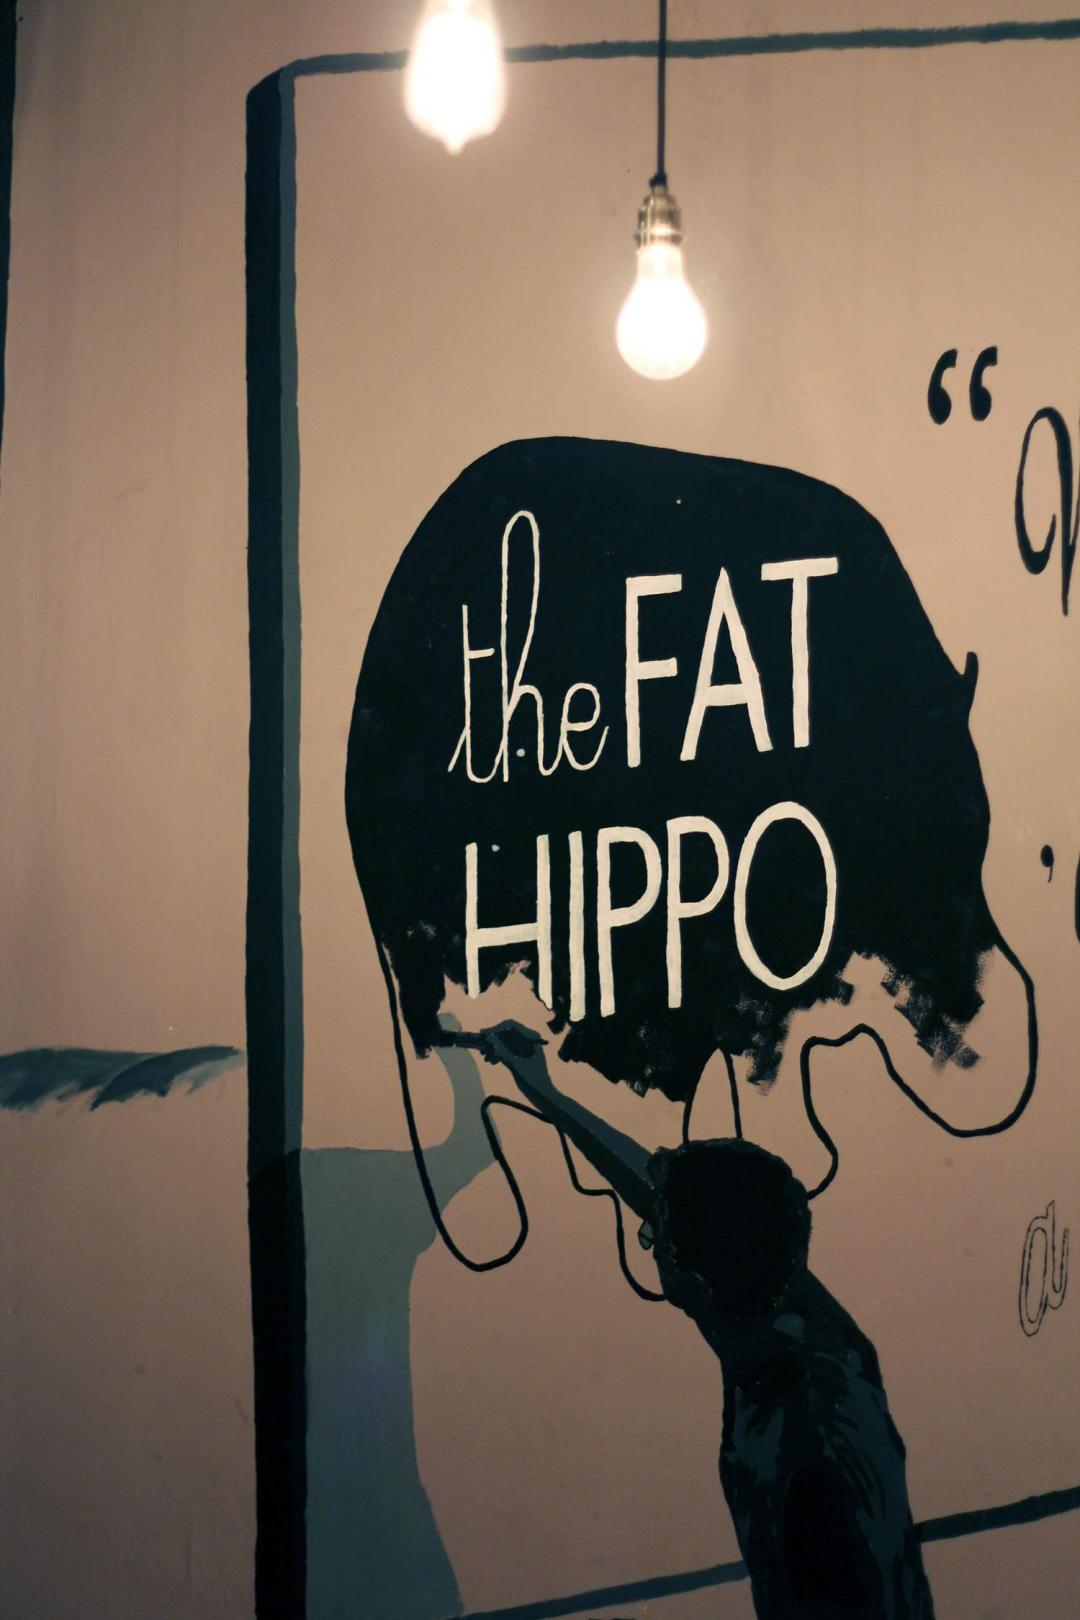 the-fat-hippo-jesmond-newcastle-review-burger-restaurant-1